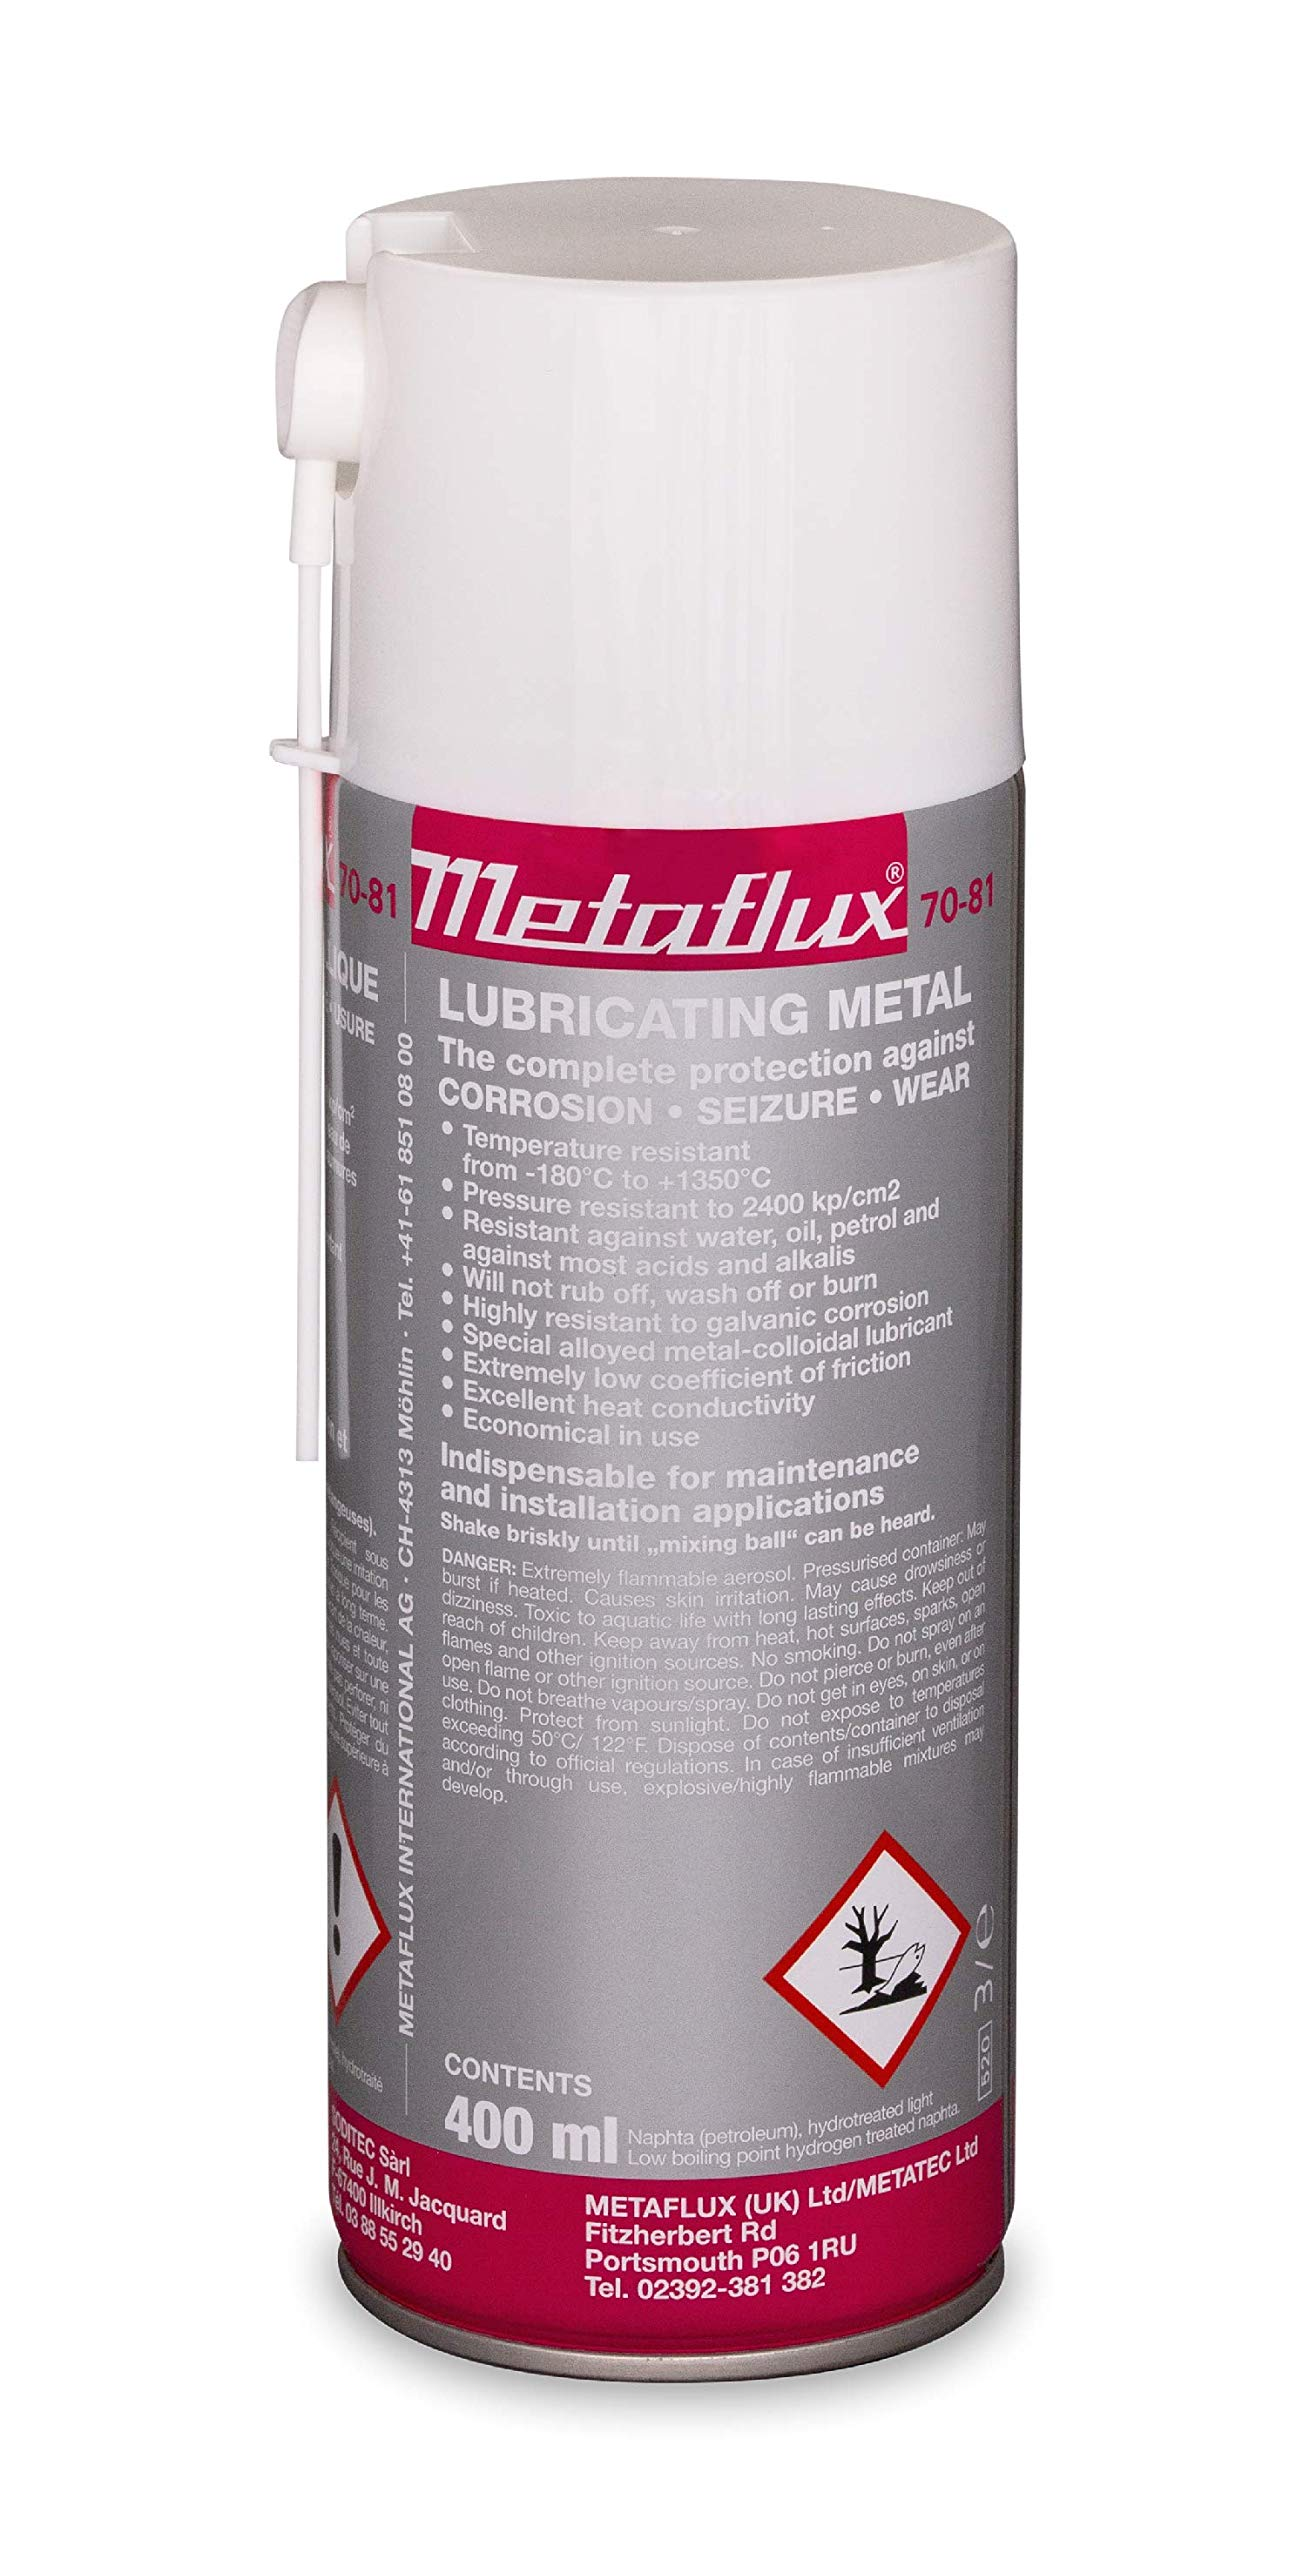 Titanium Metal Lubricant Spray & Corrosion Inhibitor| Industrial Heavy Duty Metal Lubricant Based On Titanium| Non-Flaking, Nickel, Copper and Aluminum-Free by Metaflux (13.5 Oz Spray) (1) by Metaflux